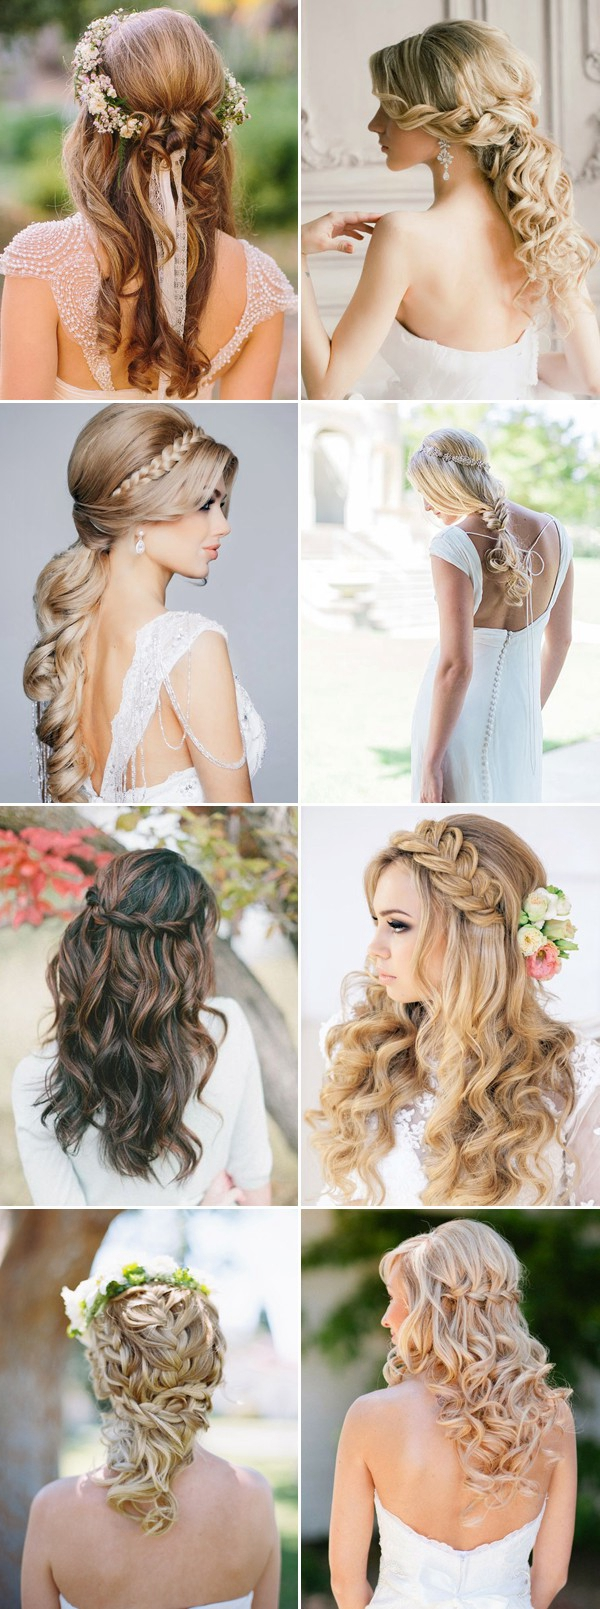 Braided Half Up Down Wedding Hairstyles For